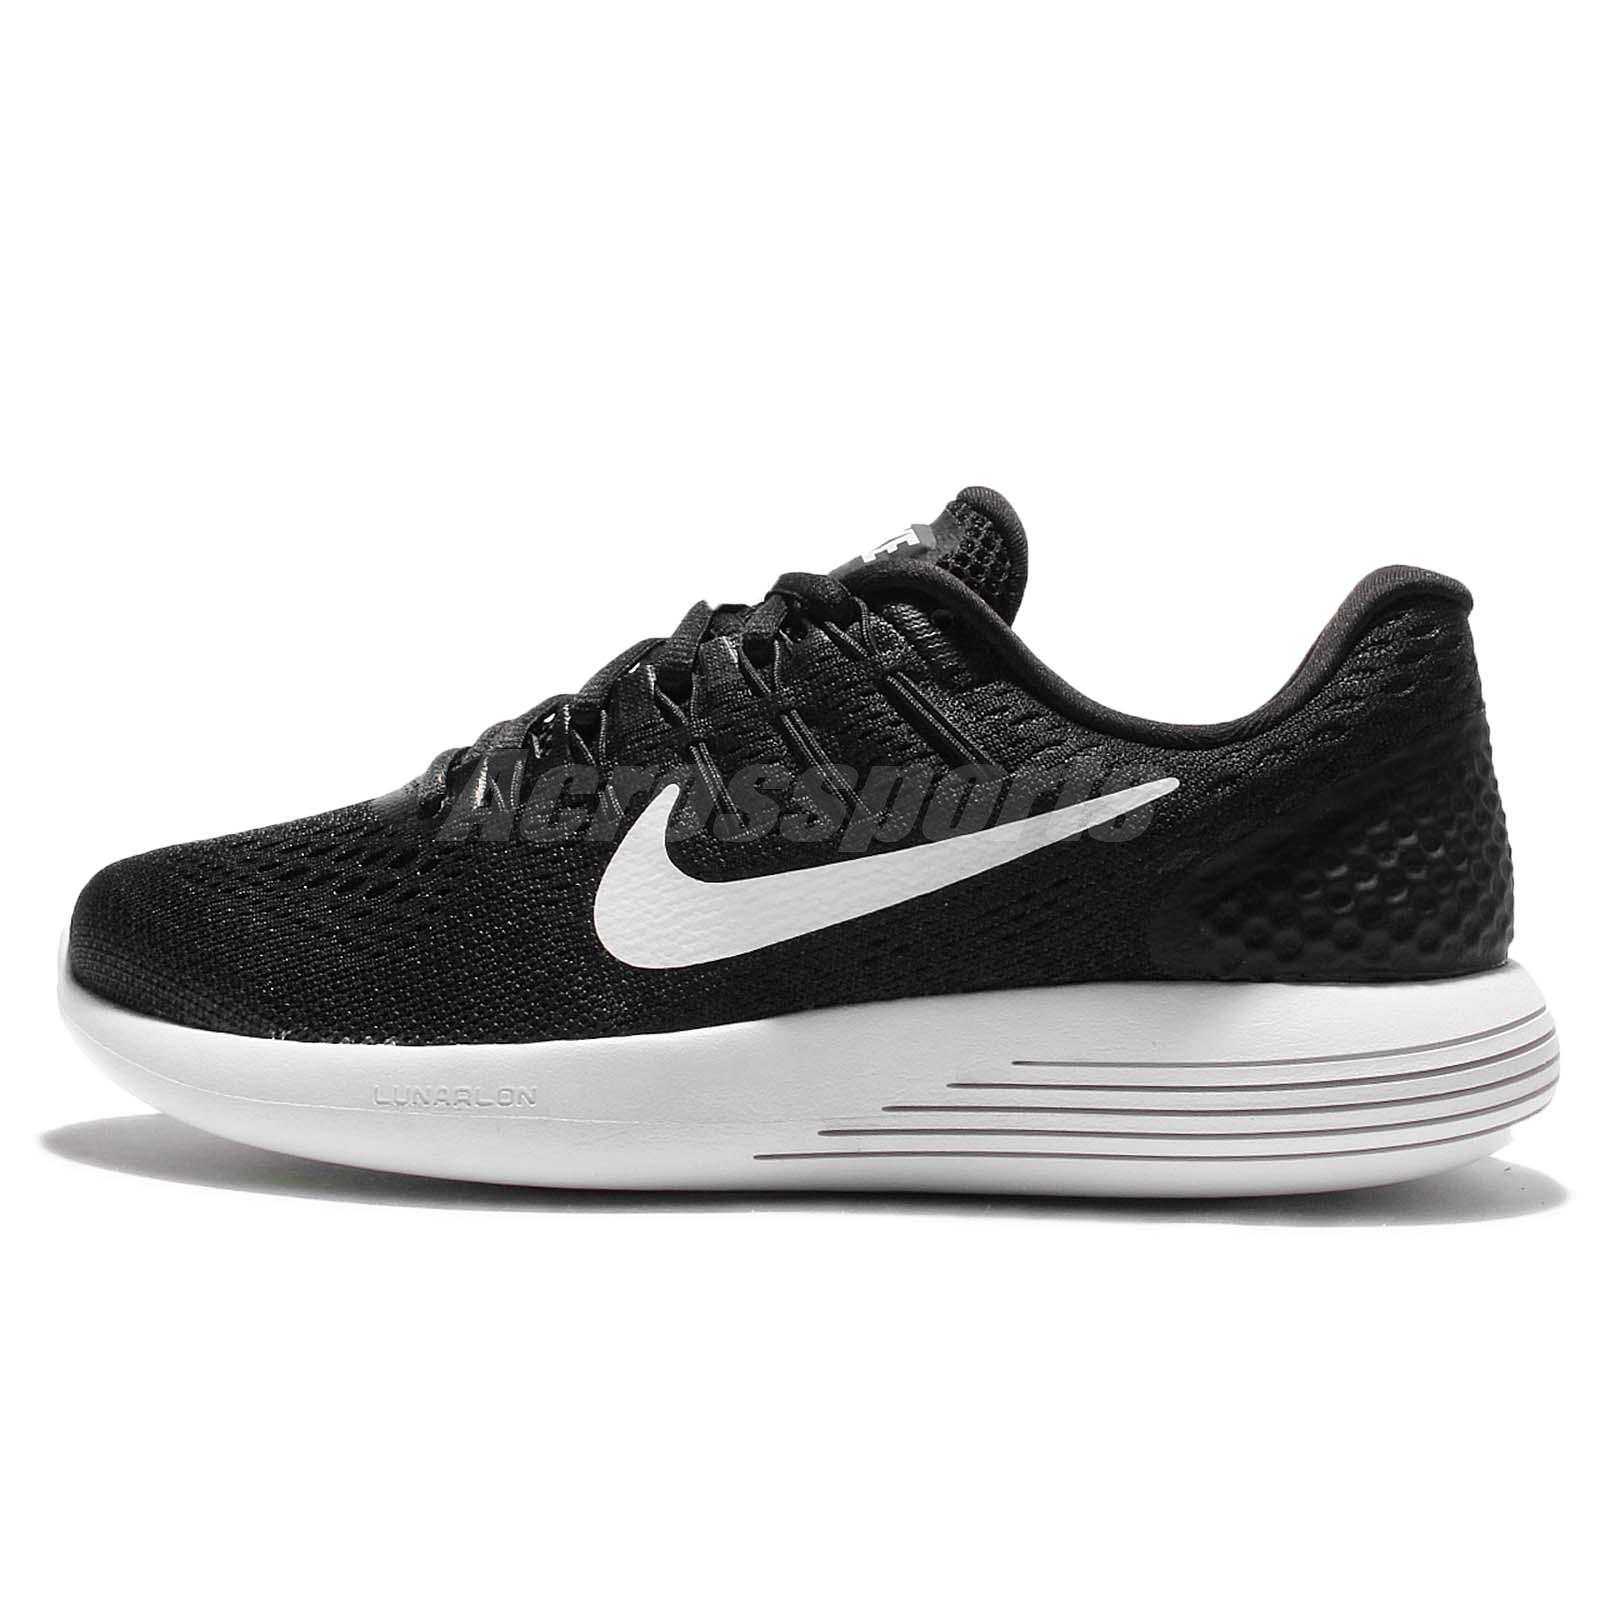 39687f5744a ... Wmns Nike LunarGlide 8 VIII Black White Womens Running Shoes Sneakers  843726-001 ...